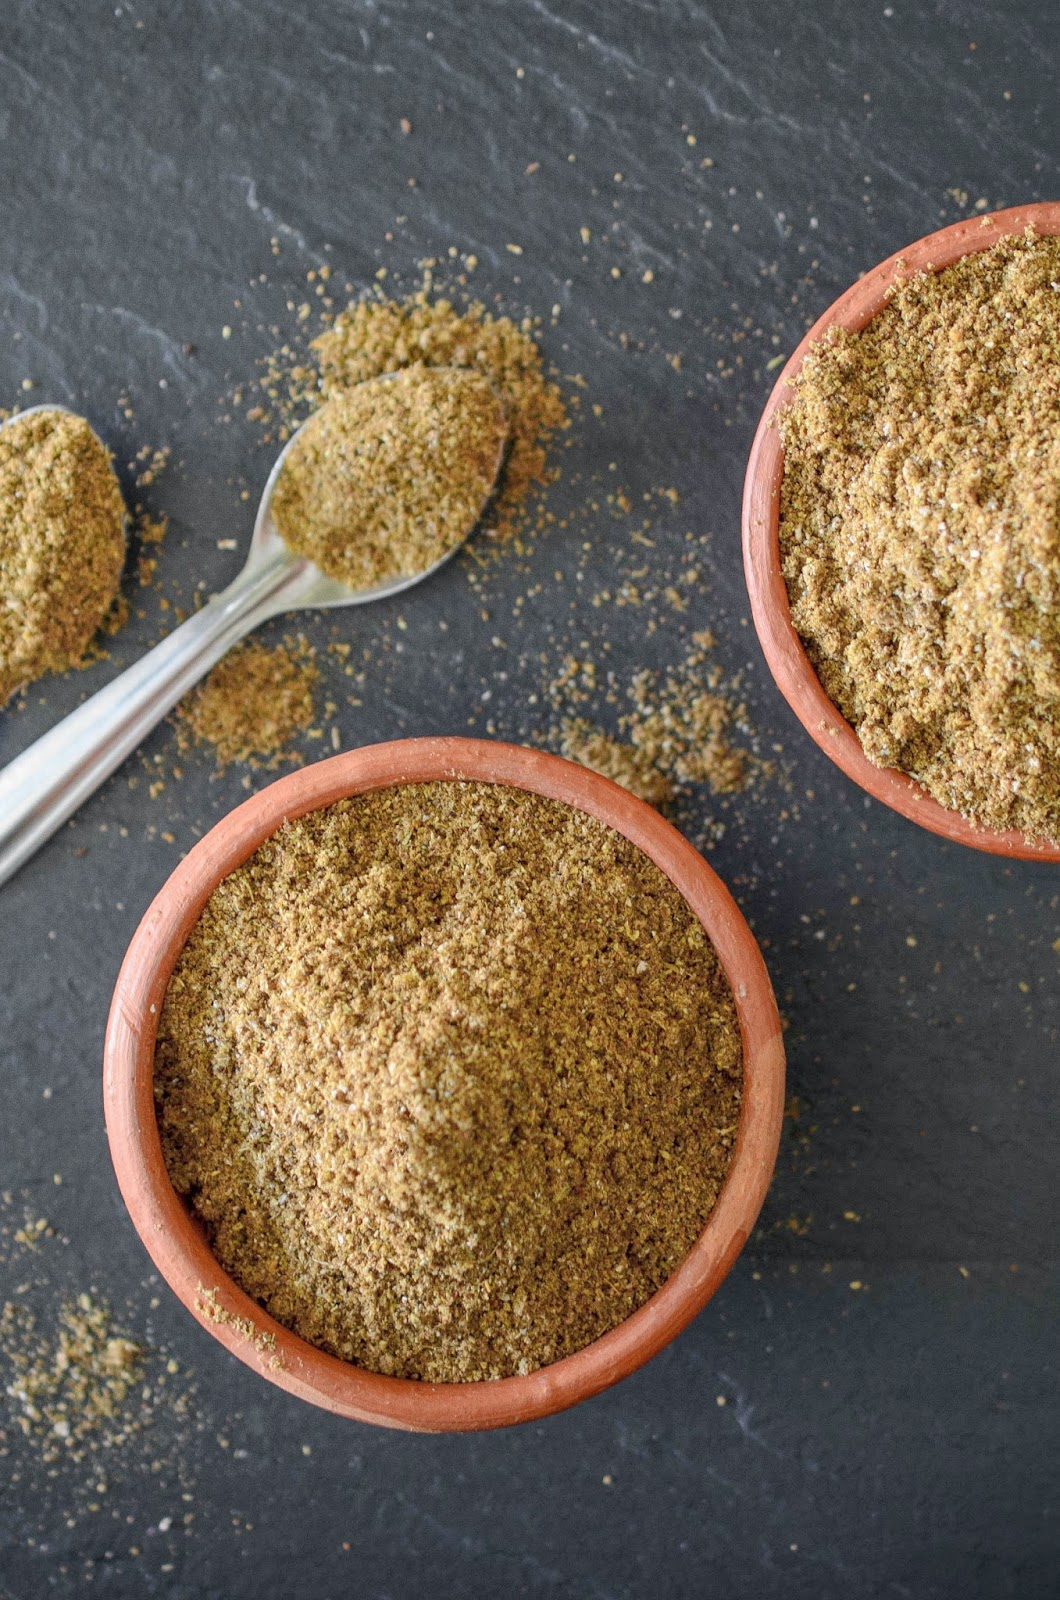 Spices Indian, what is their secret